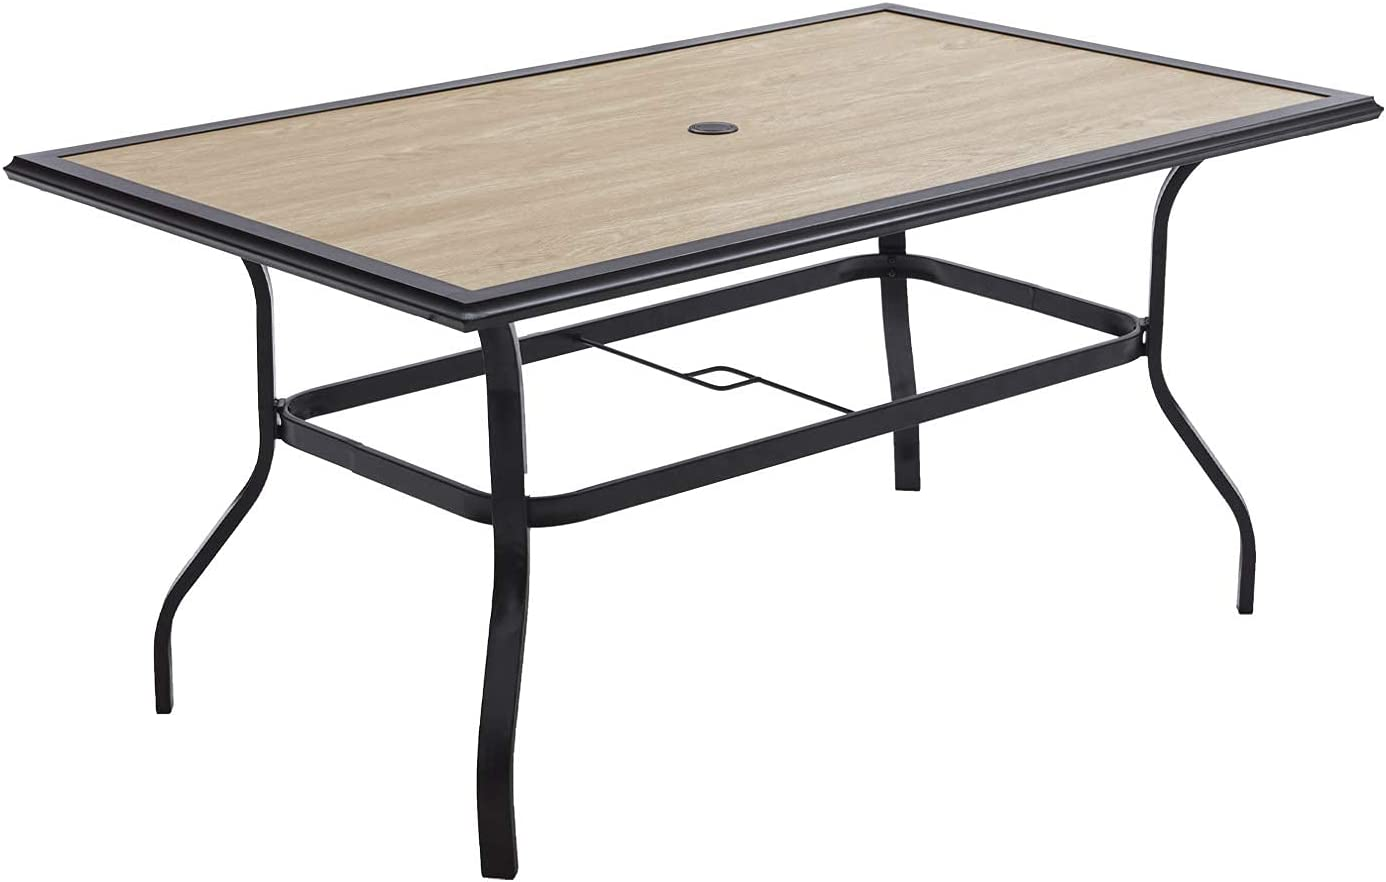 Patio Dining Table New Store sales Wood-Like Top Frame Sturdy 6 Metal for